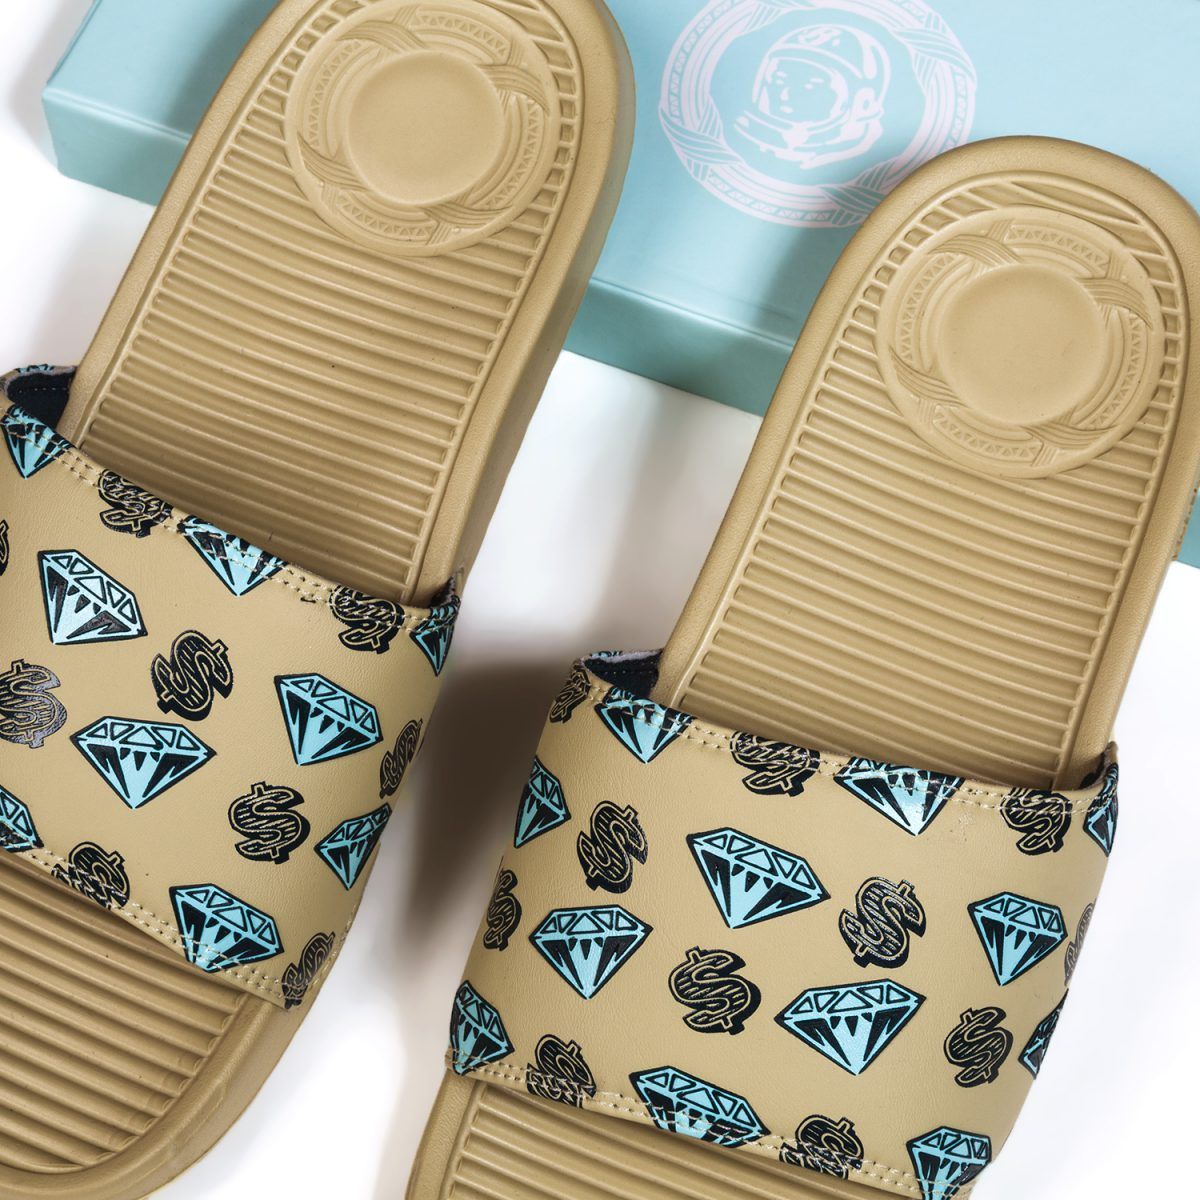 c98c6d42e Limited quantities of the BBC ICECREAM x SANDALBOYZ slides will be  available at the BBC SoHo flagship (7 Mercer St.)